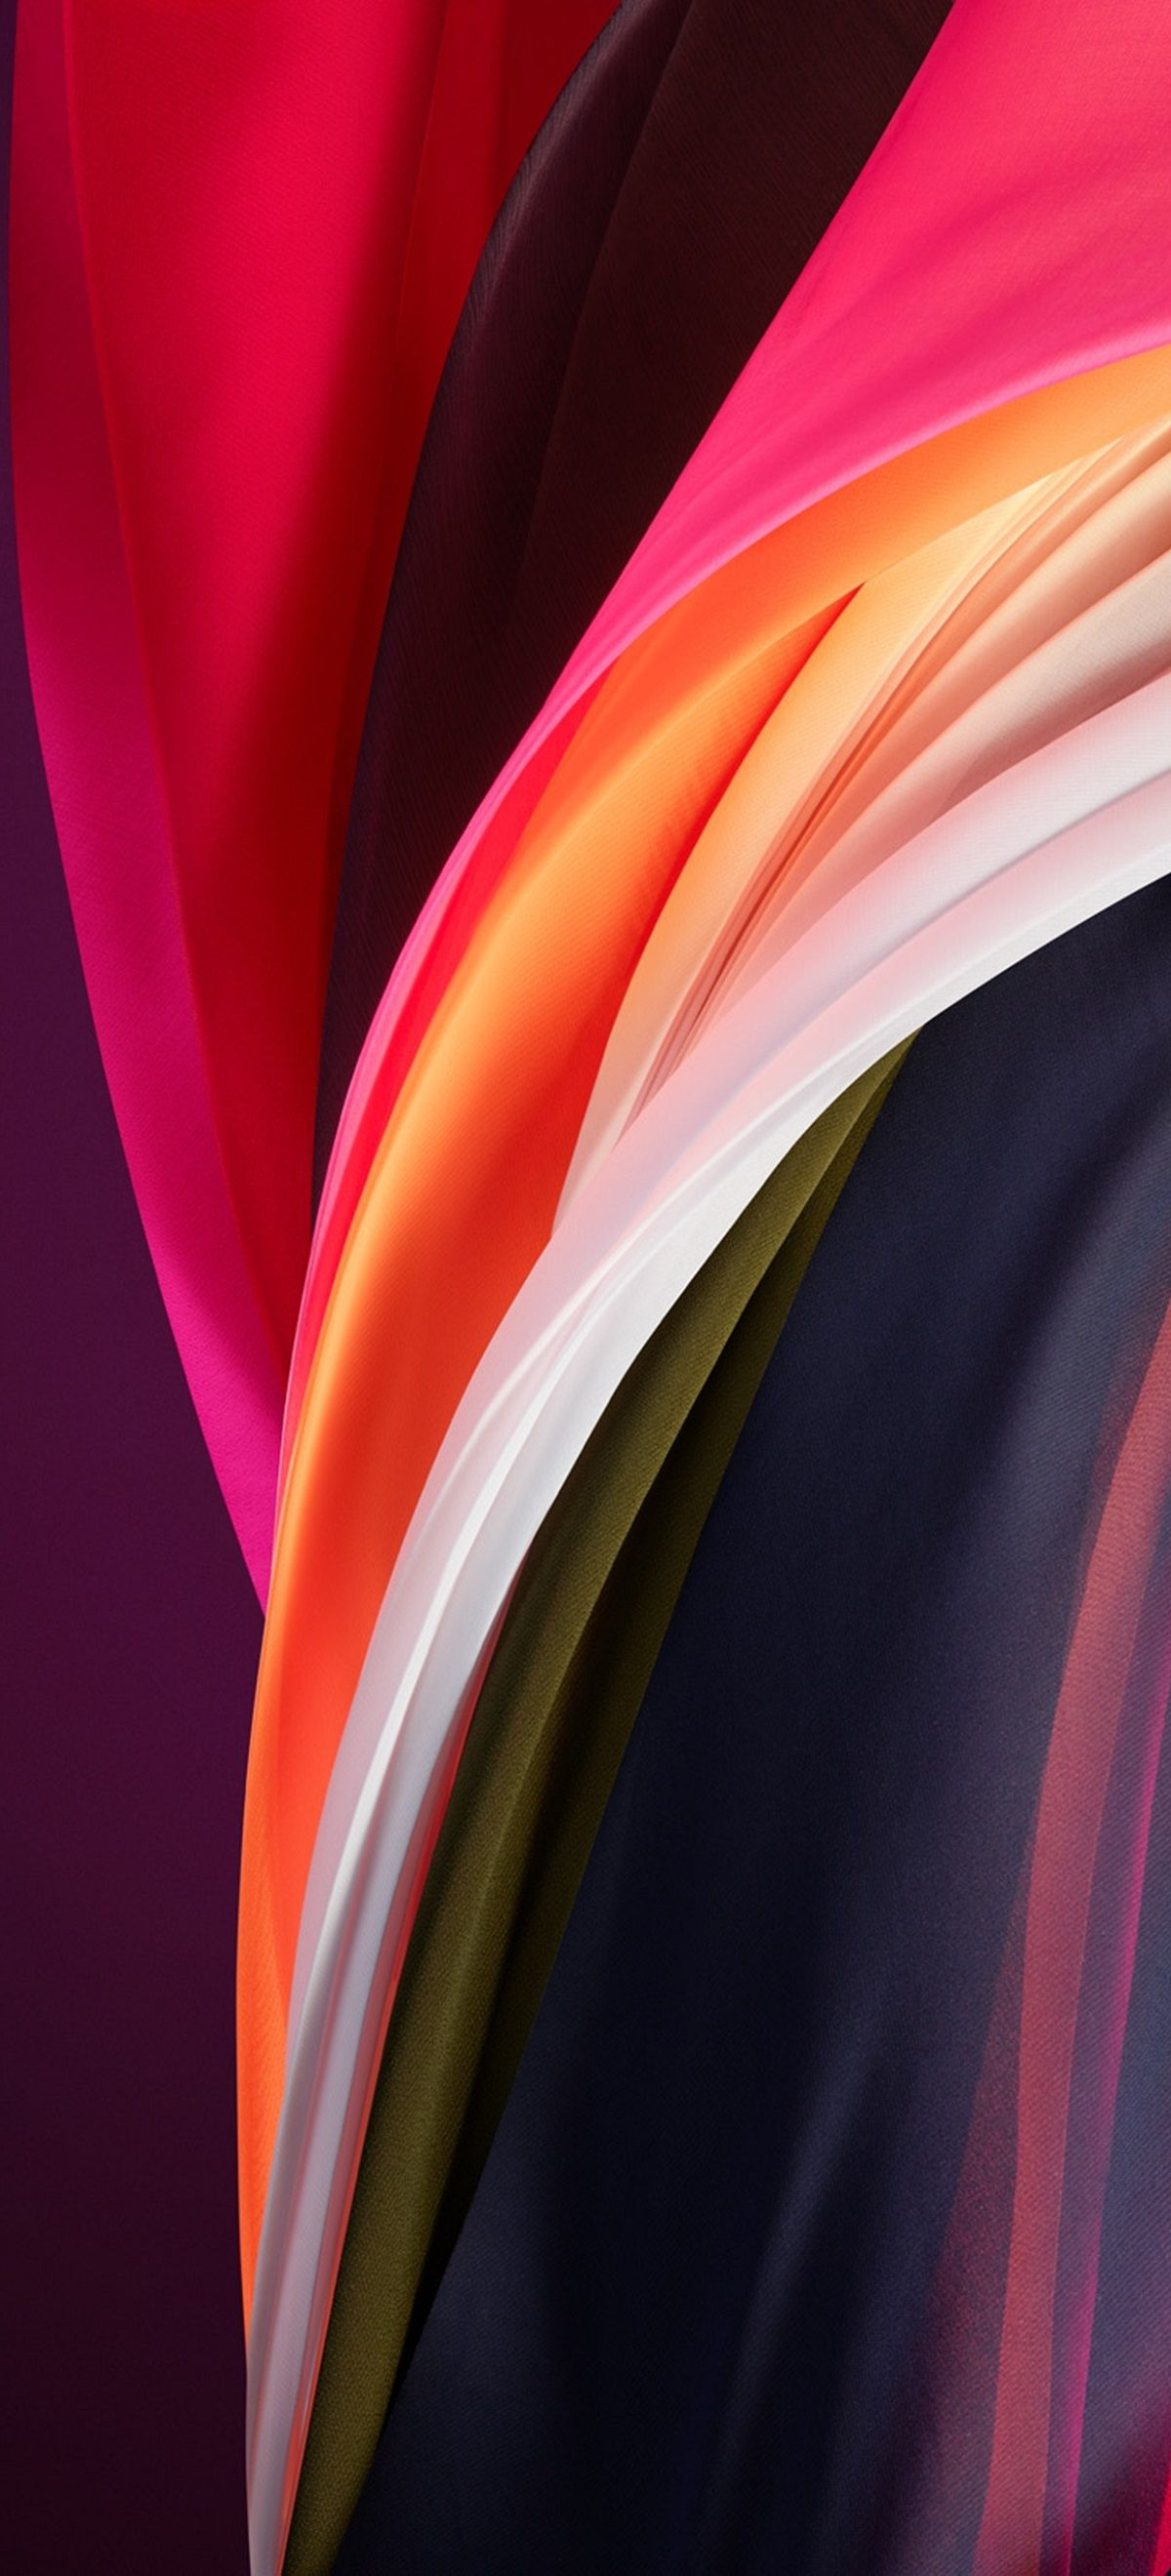 iPhone 12 SE 2020 Wallpapers 1 1200x2640 2190000094